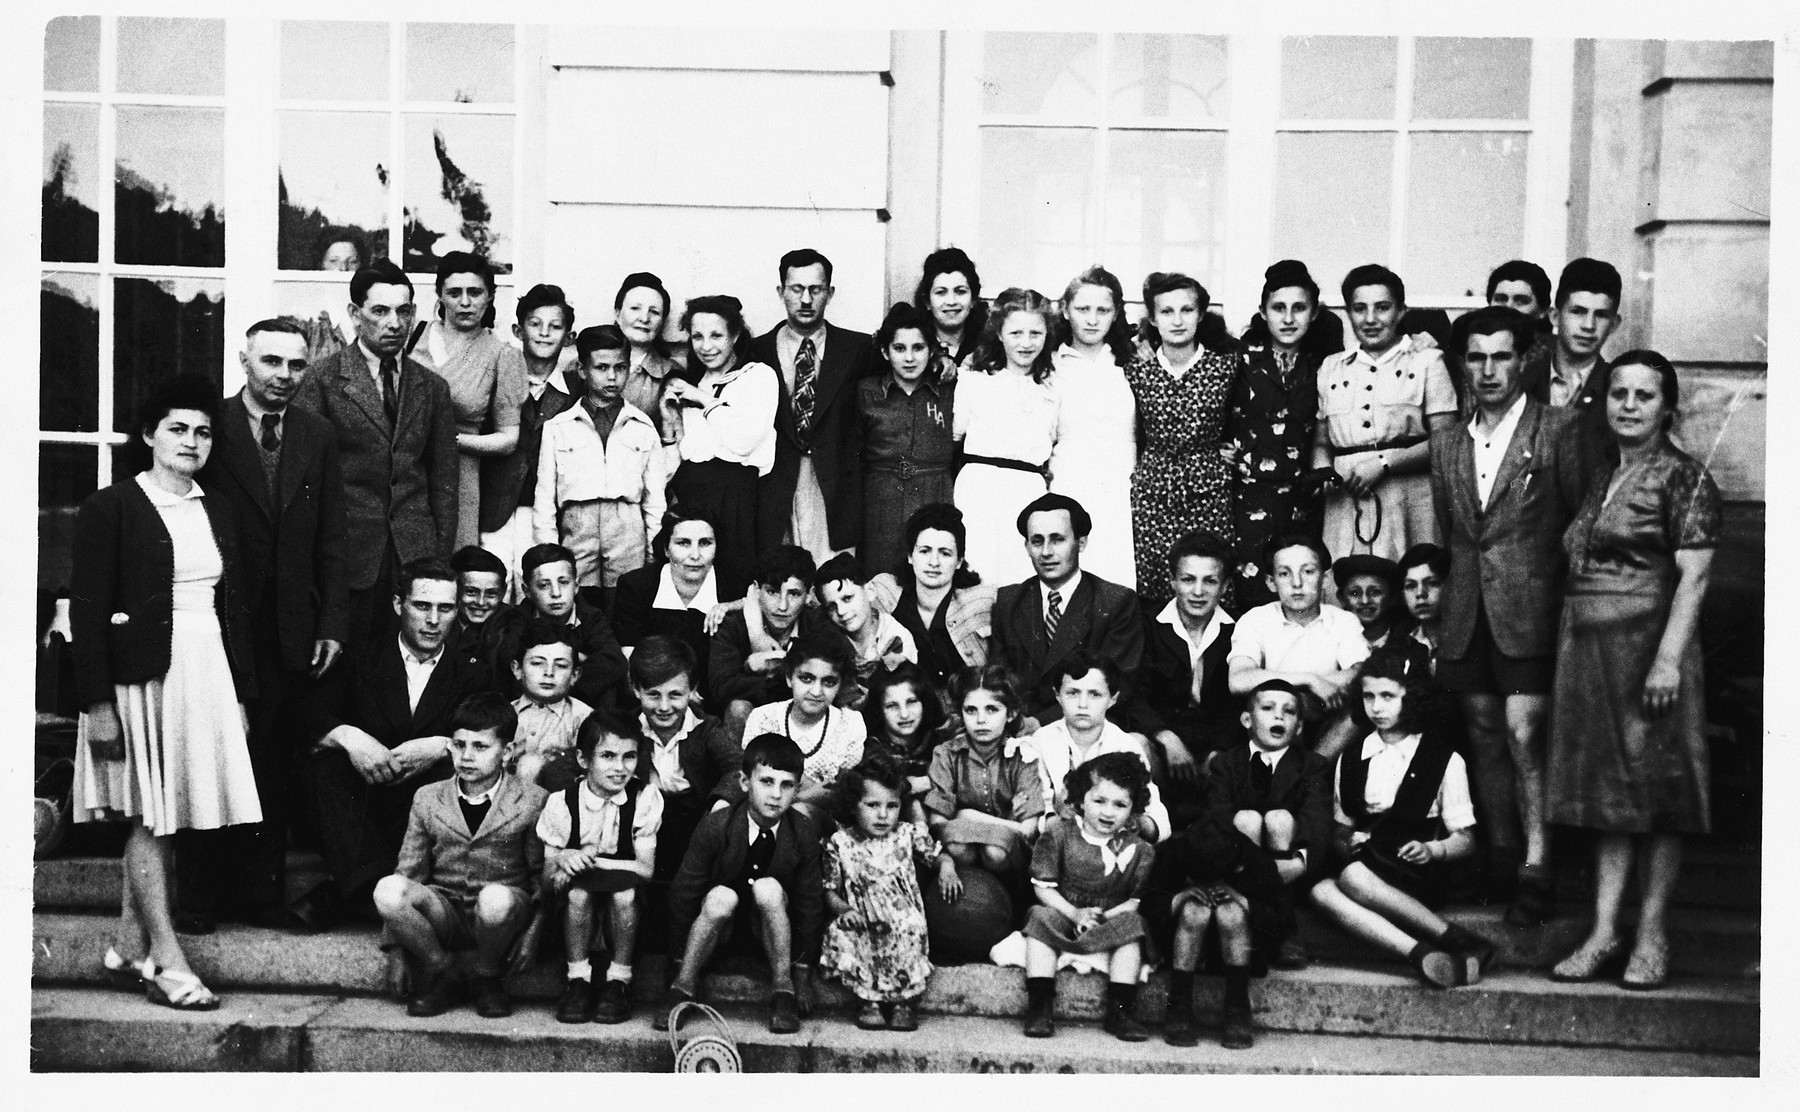 Group portrait of children and adults at the Hebrew school in the Gabersee displaced persons camp.  Among those pictured is Bronia Spielman (front row, second from the left).